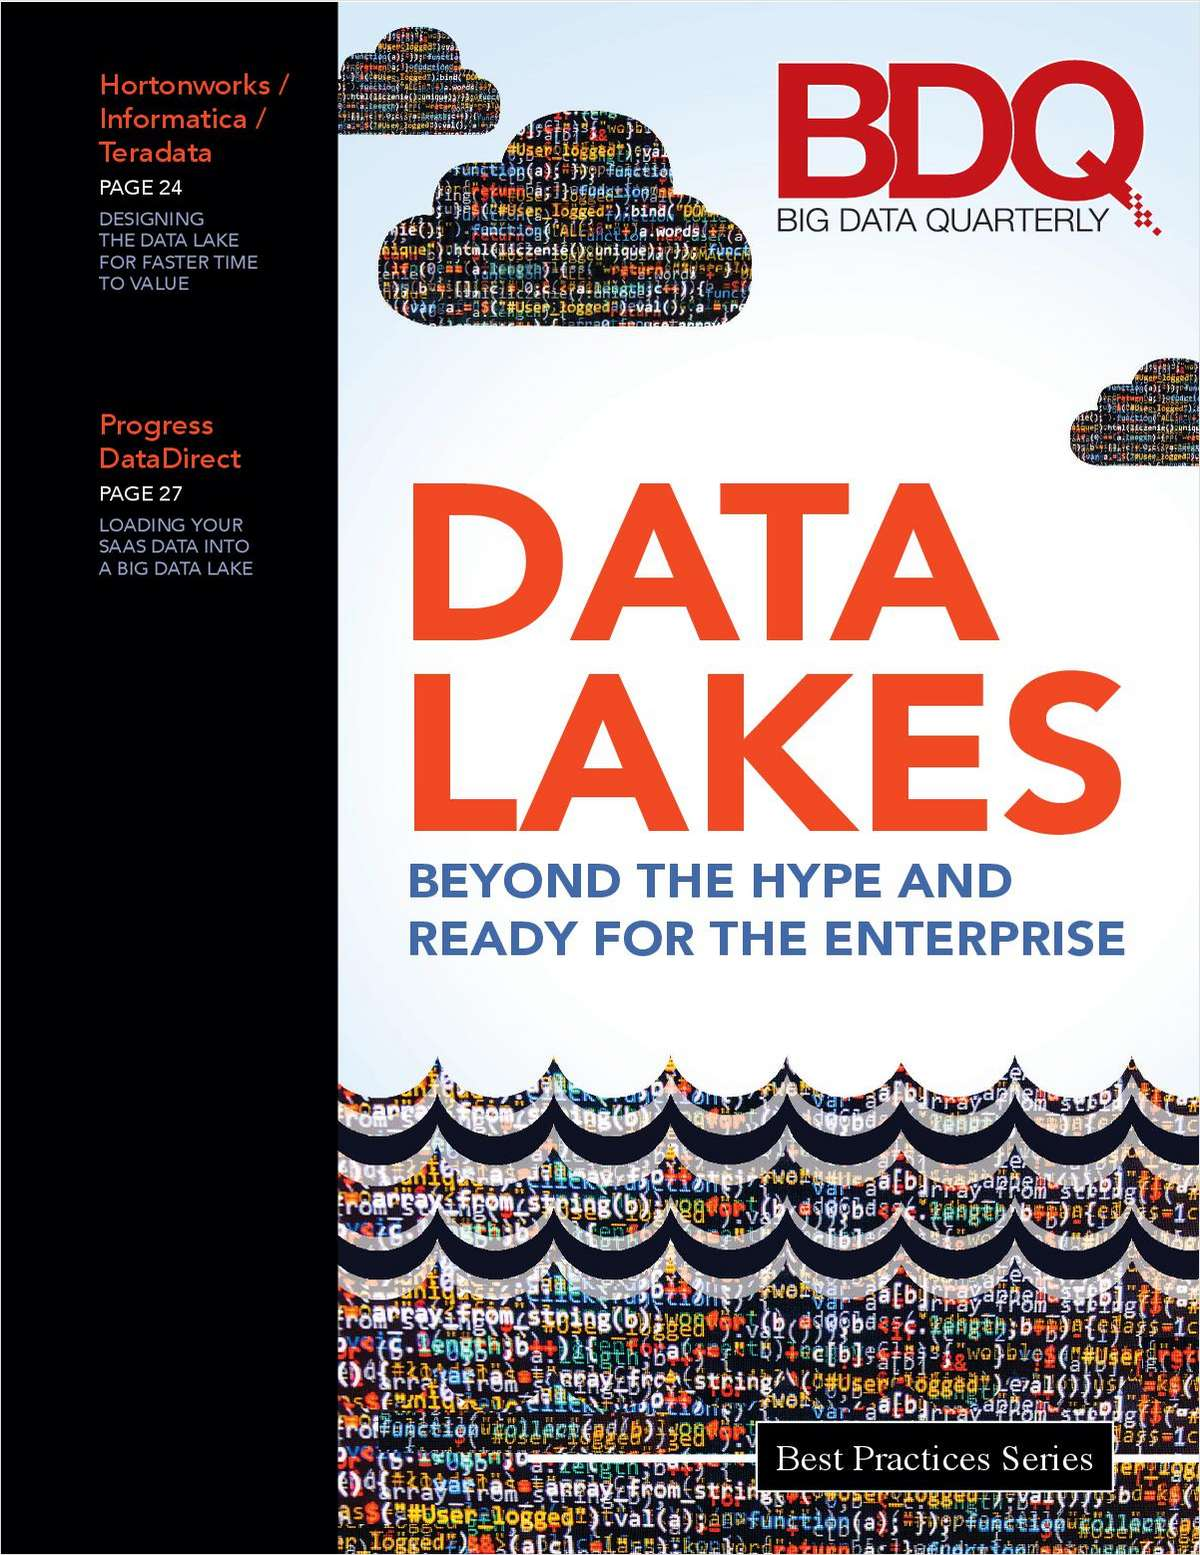 Data Lake Beyond the Hype and Ready for the New Enterprise